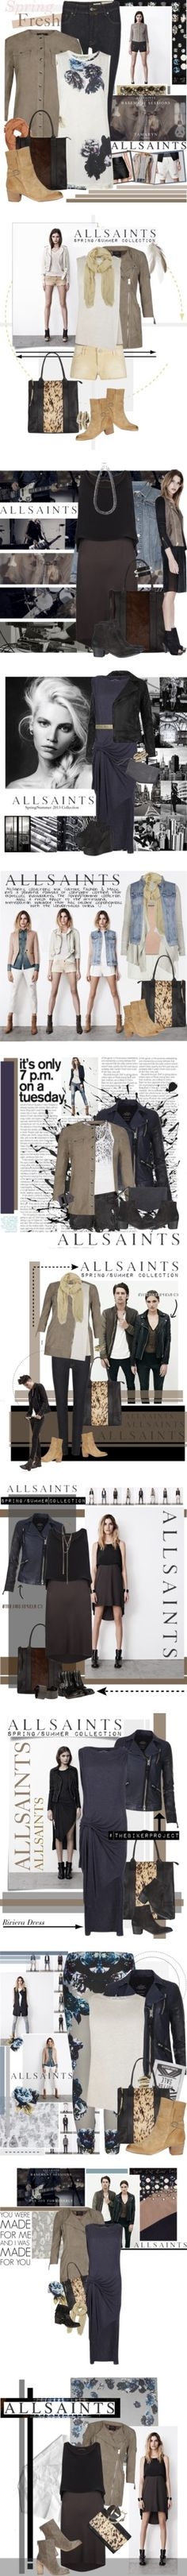 """""""AllSaints Spring 2013"""" by allsaints ❤ liked on Polyvore"""